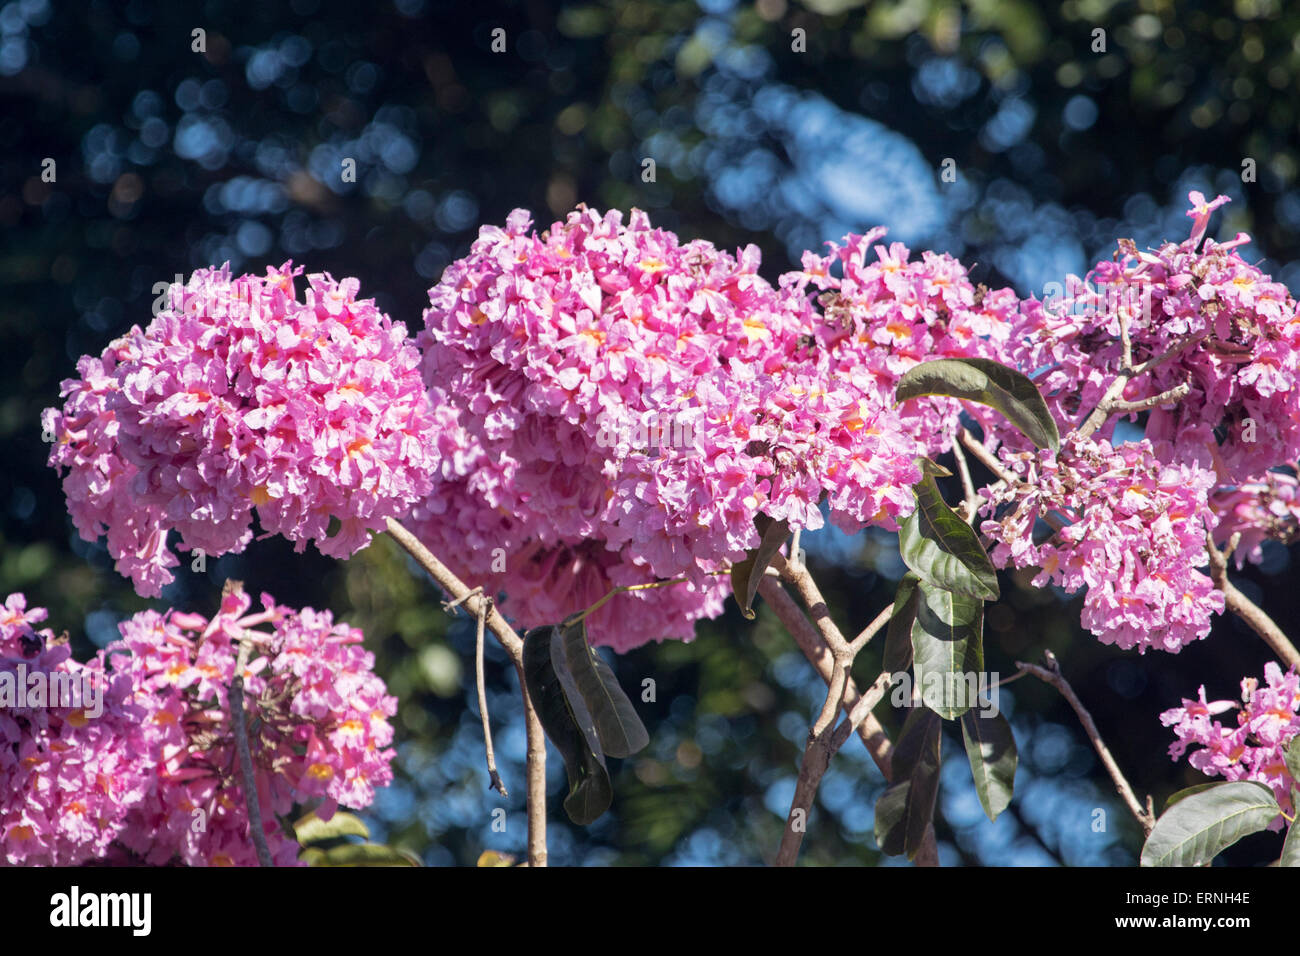 Large clusters of bright pink flowers of tabebuia impetiginosa pink large clusters of bright pink flowers of tabebuia impetiginosa pink trumpet tree against light dark background in australia mightylinksfo